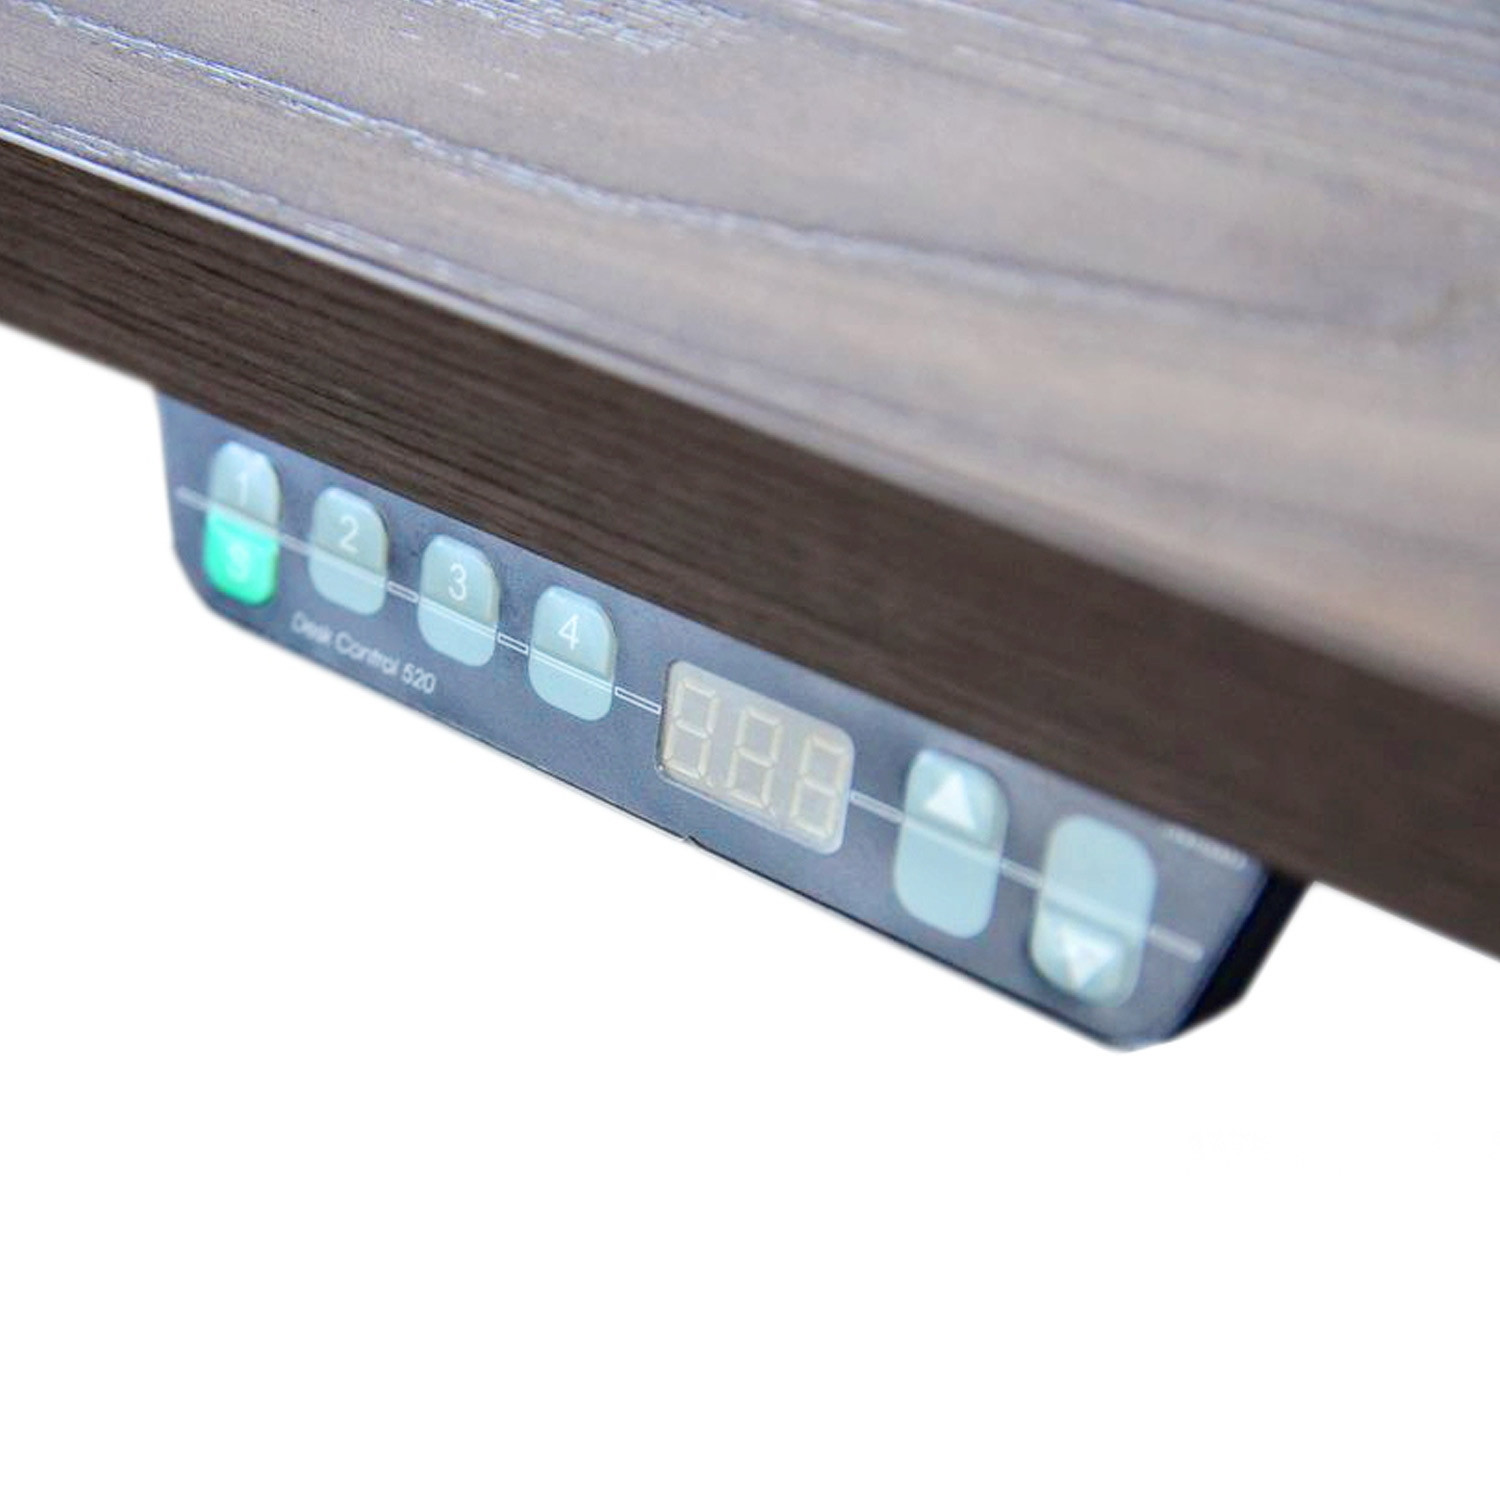 Mito Executive Sit-Stand Desk Control Panel